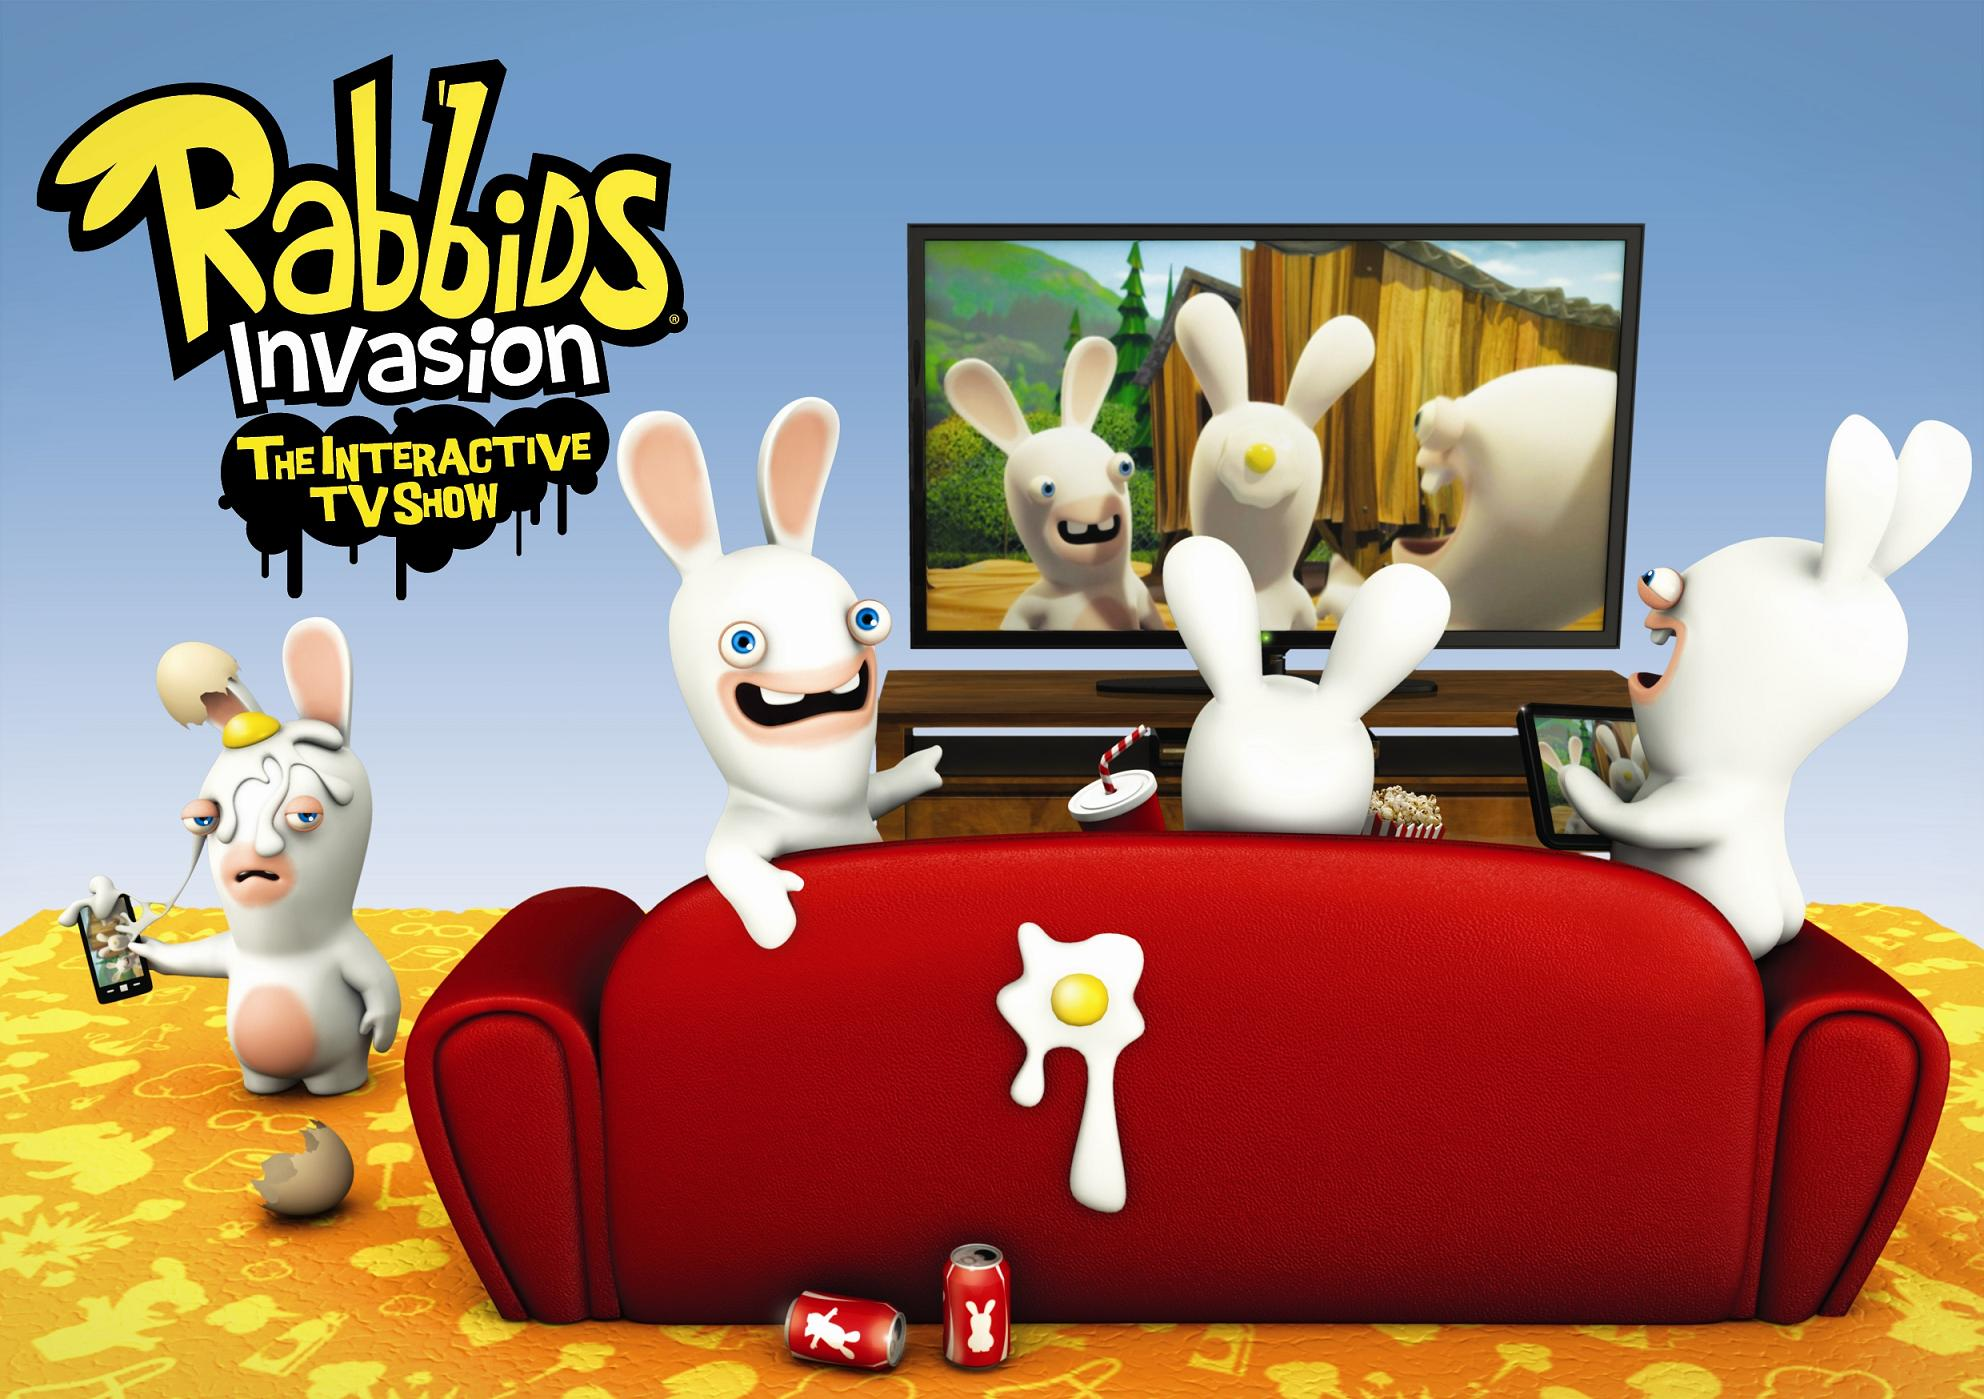 Check out the trailer for Rabbids Invasion Interactive TV Show